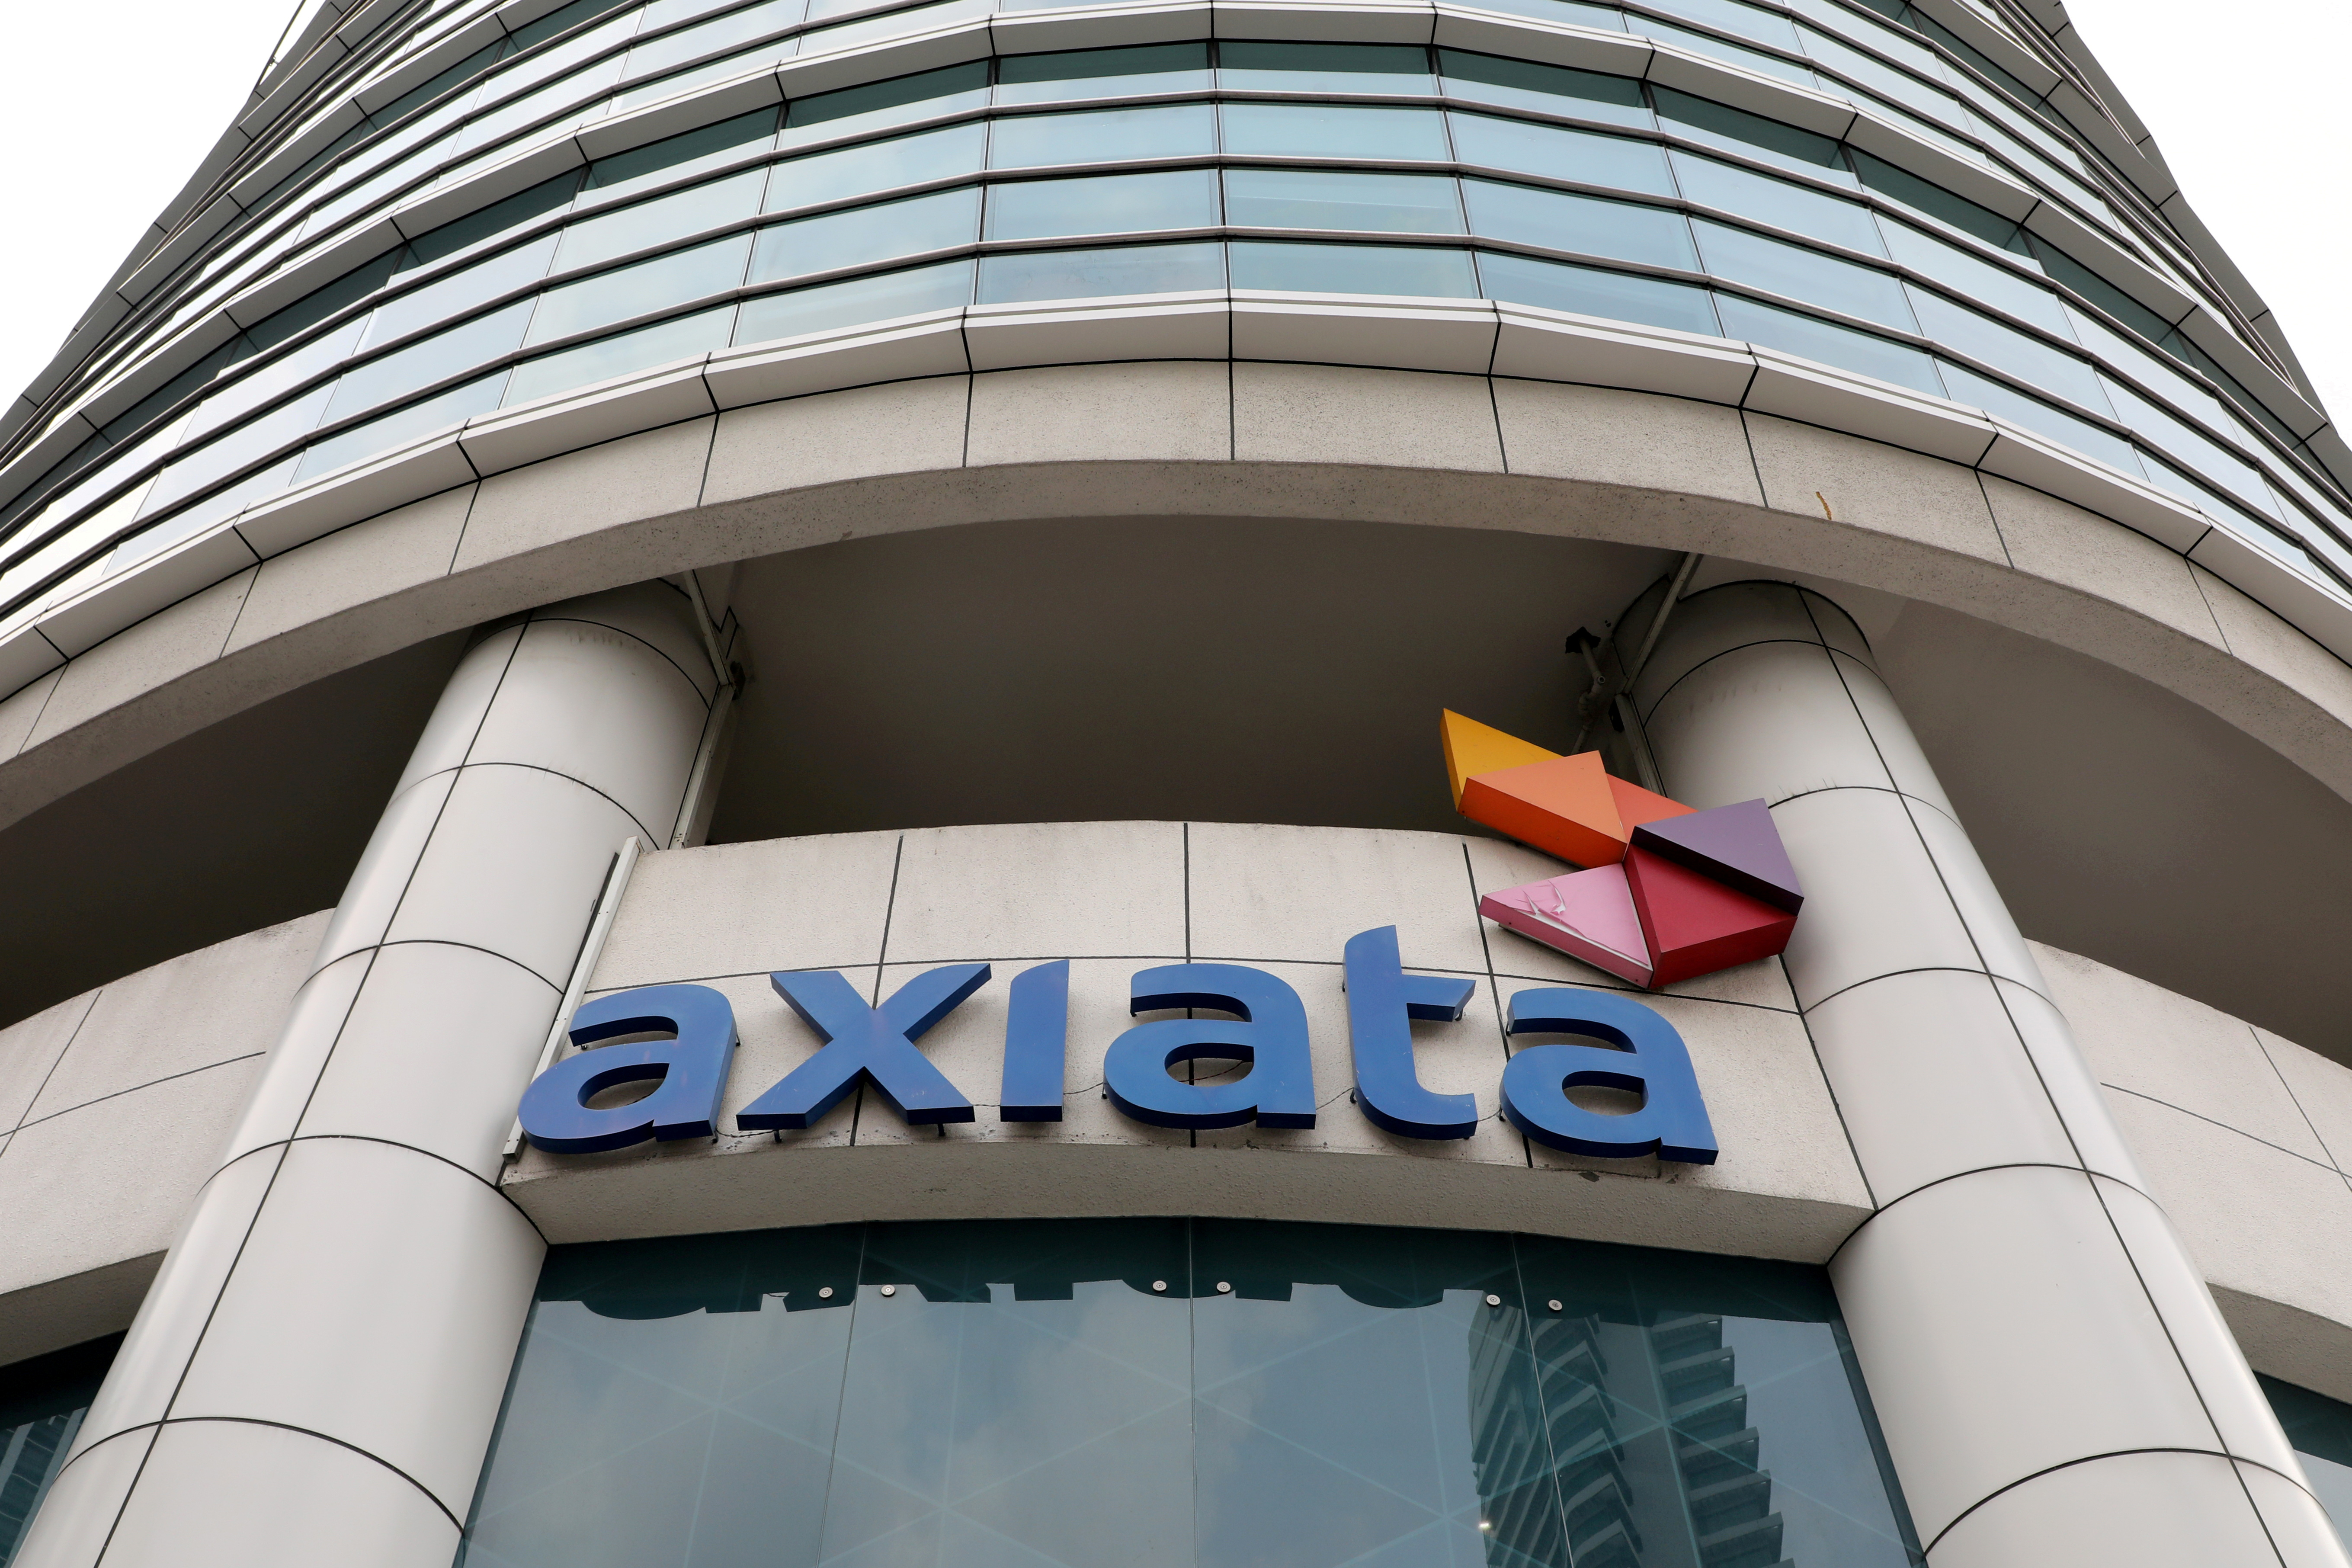 A general view of the Axiata headquarters building in Kuala Lumpur, Malaysia, October 1, 2019. REUTERS/Lim Huey Teng/File Photo